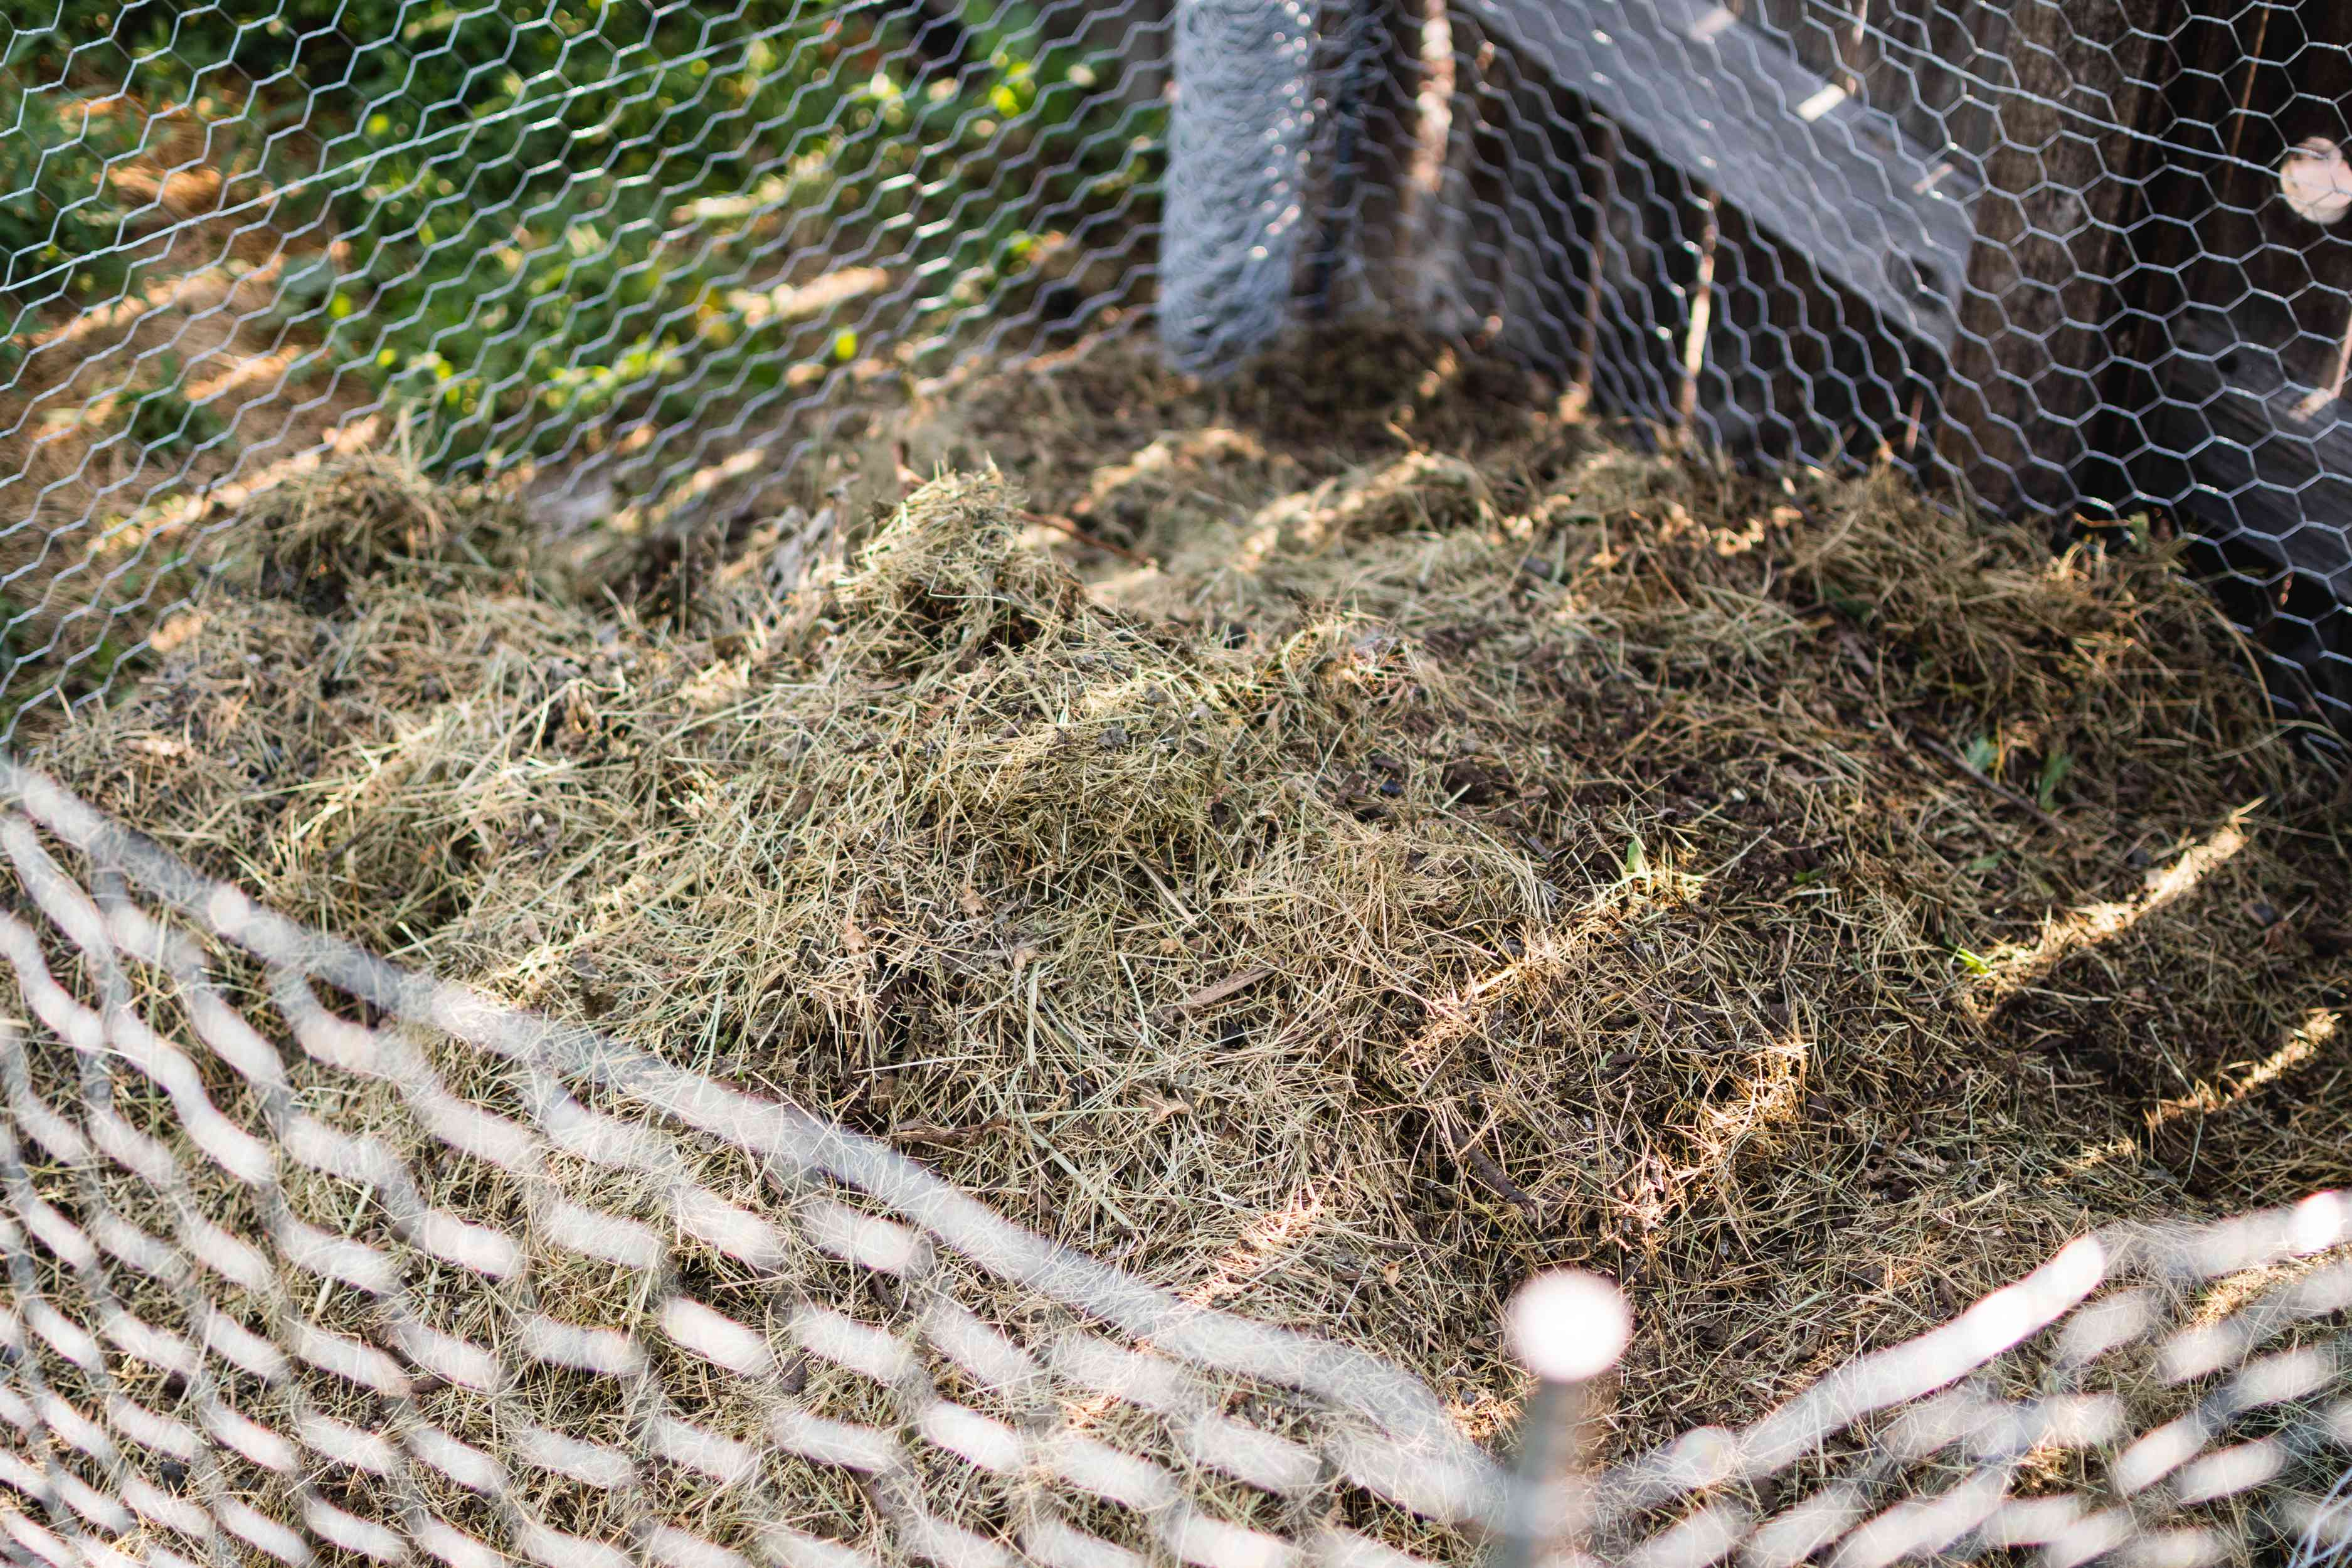 Organic waste and straw added to composting pile within wire fencing